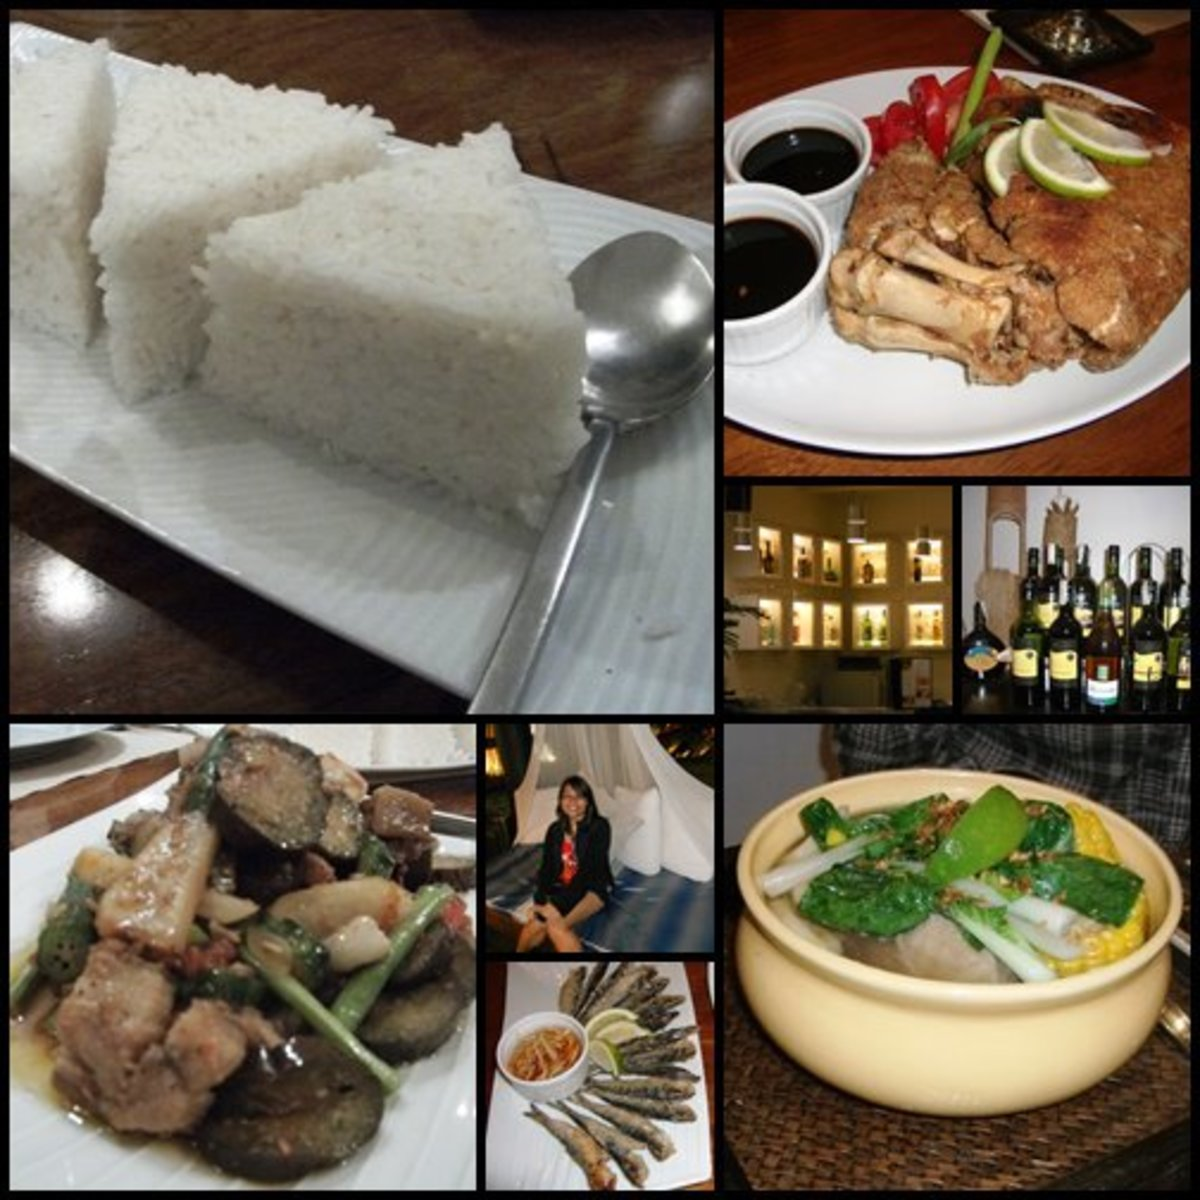 A samplings of The T House's offerings:  Clockwise from left: (Triangular) rice, crispy pata, beef shank bulalo, fried tawilis, and pinakbet.